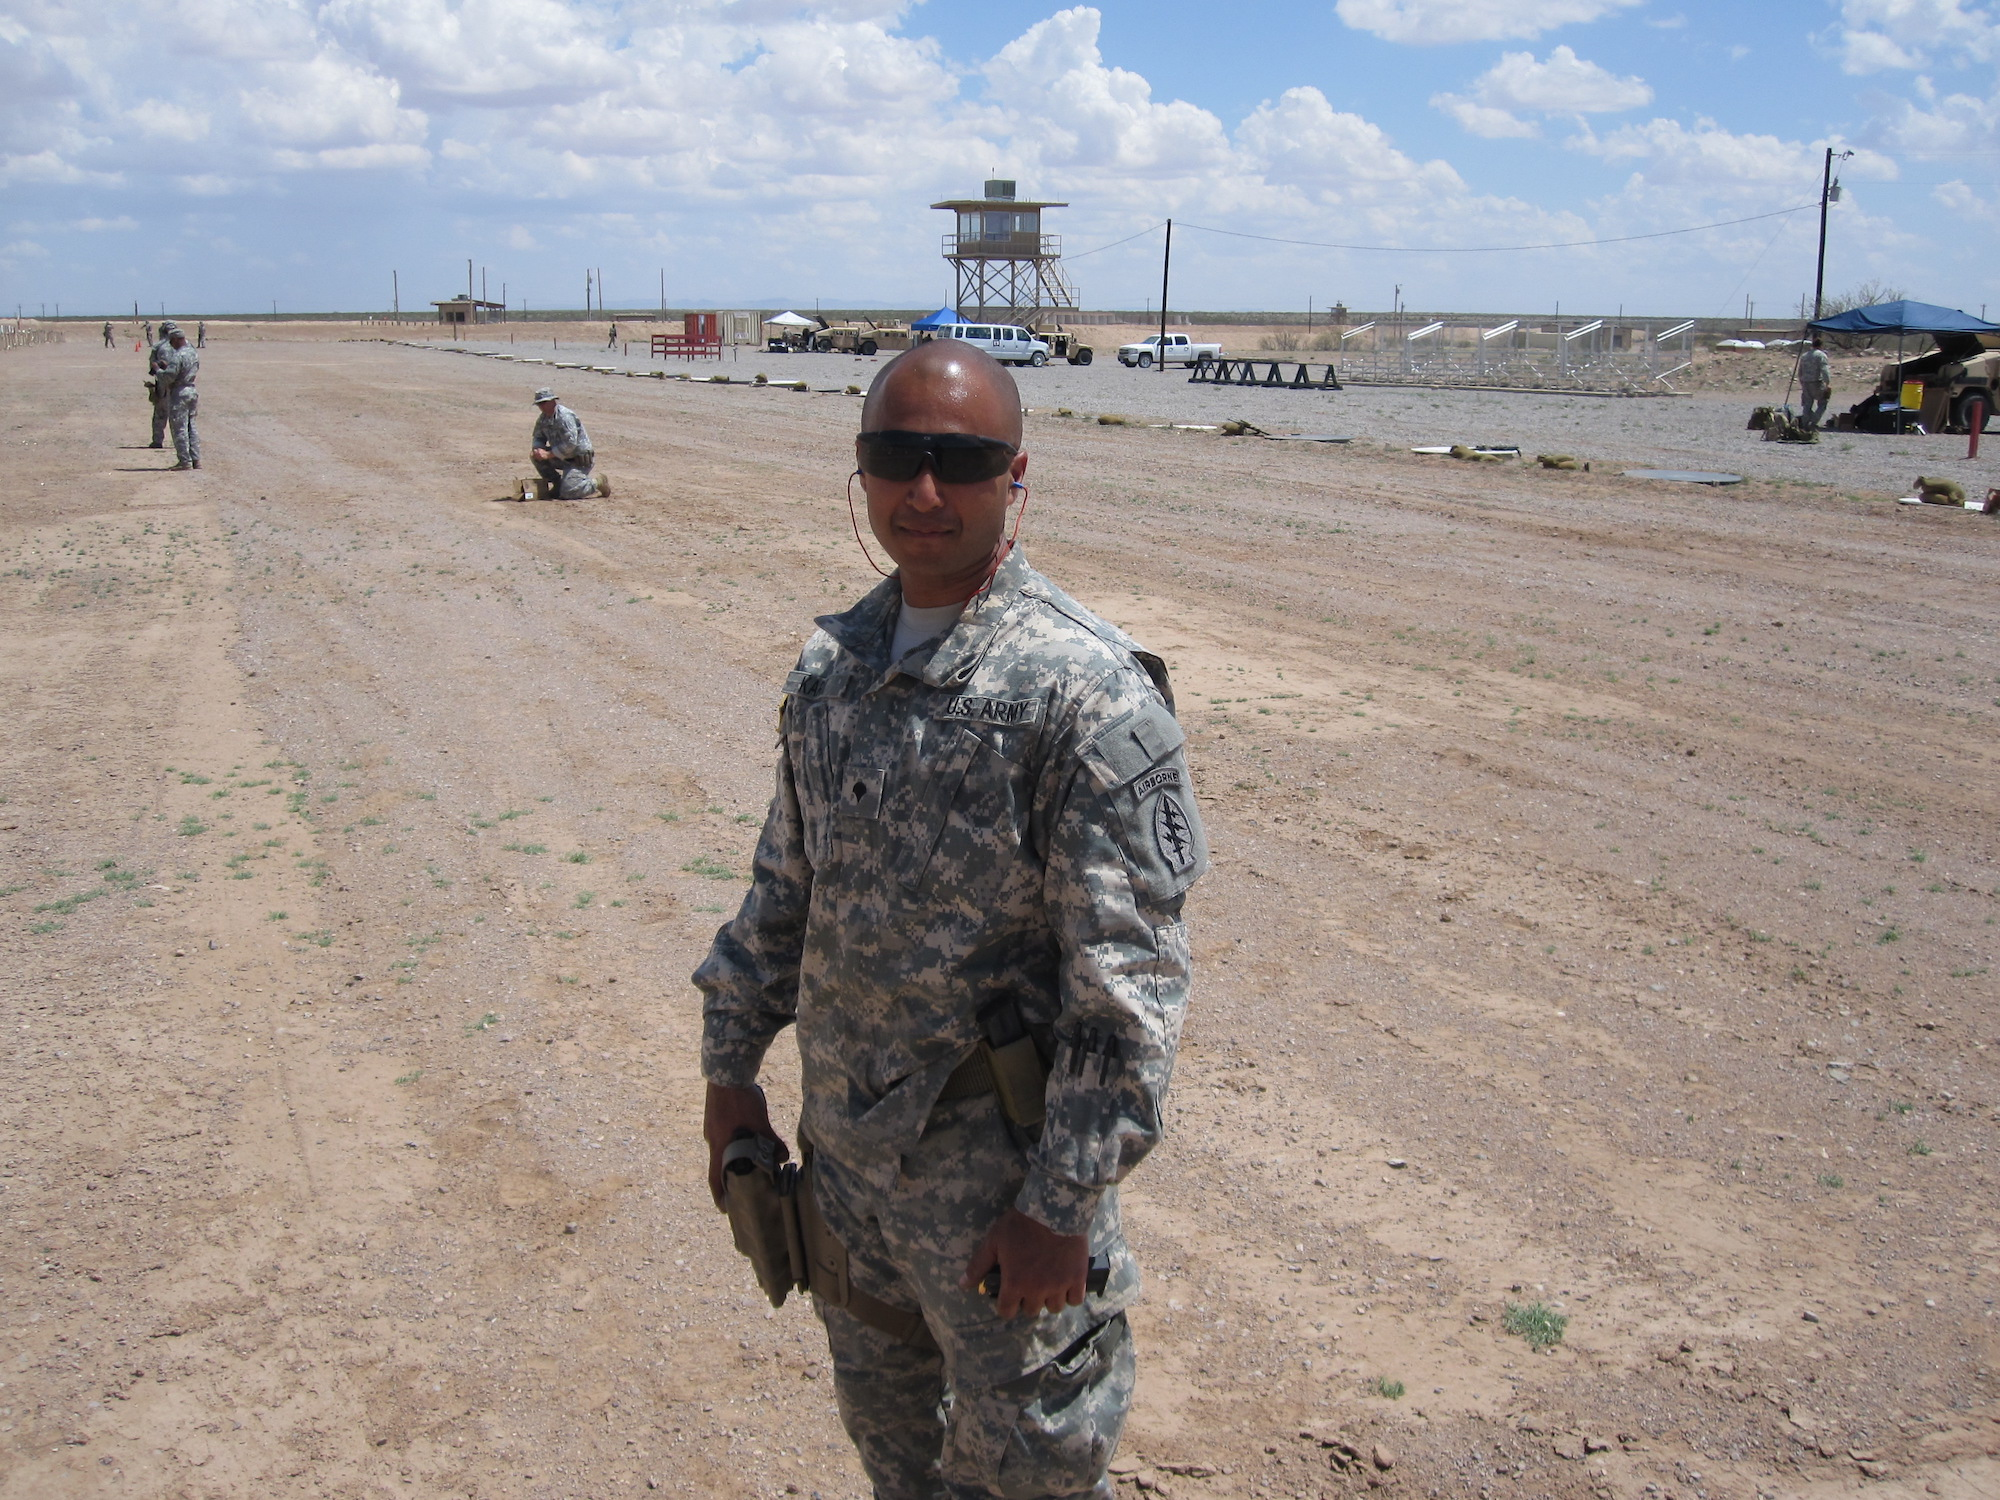 GSB student Preetam Karki served as a CBRN specialist in the United States Army. He was stationed with the Special Forces in Afghanistan and Pakistan.